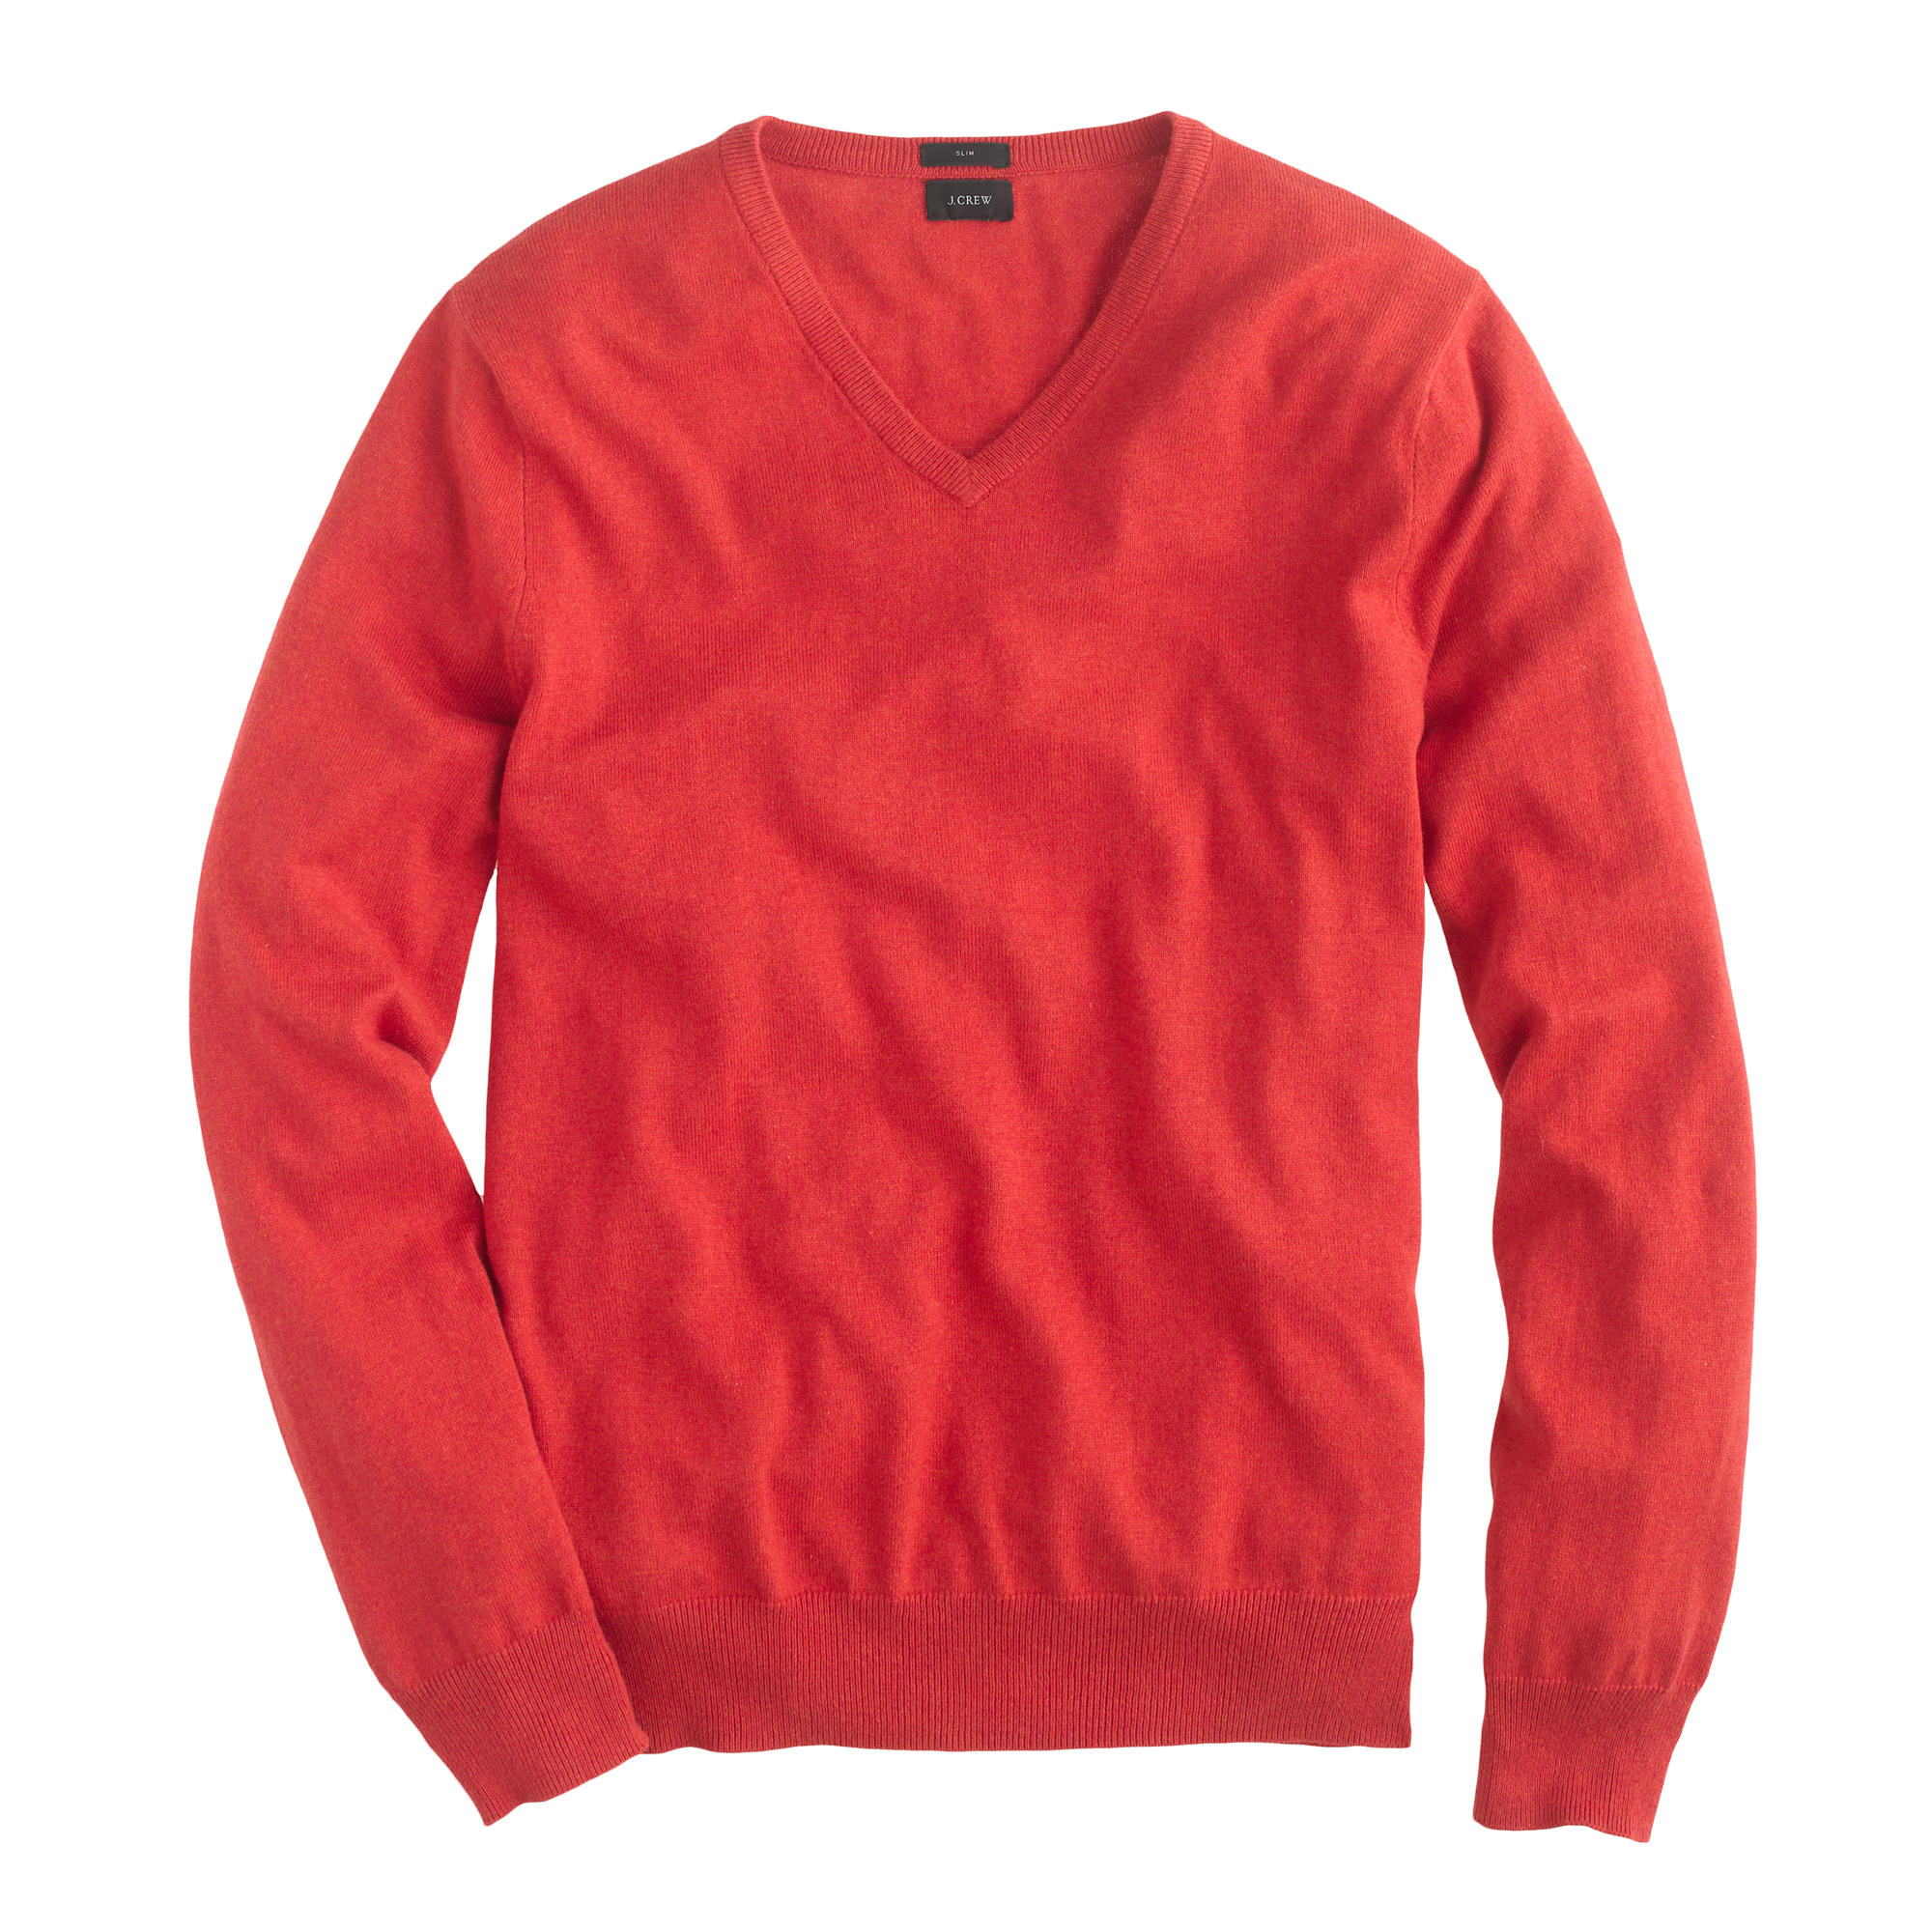 Find great deals on eBay for mens cashmere sweaters. Shop with confidence.